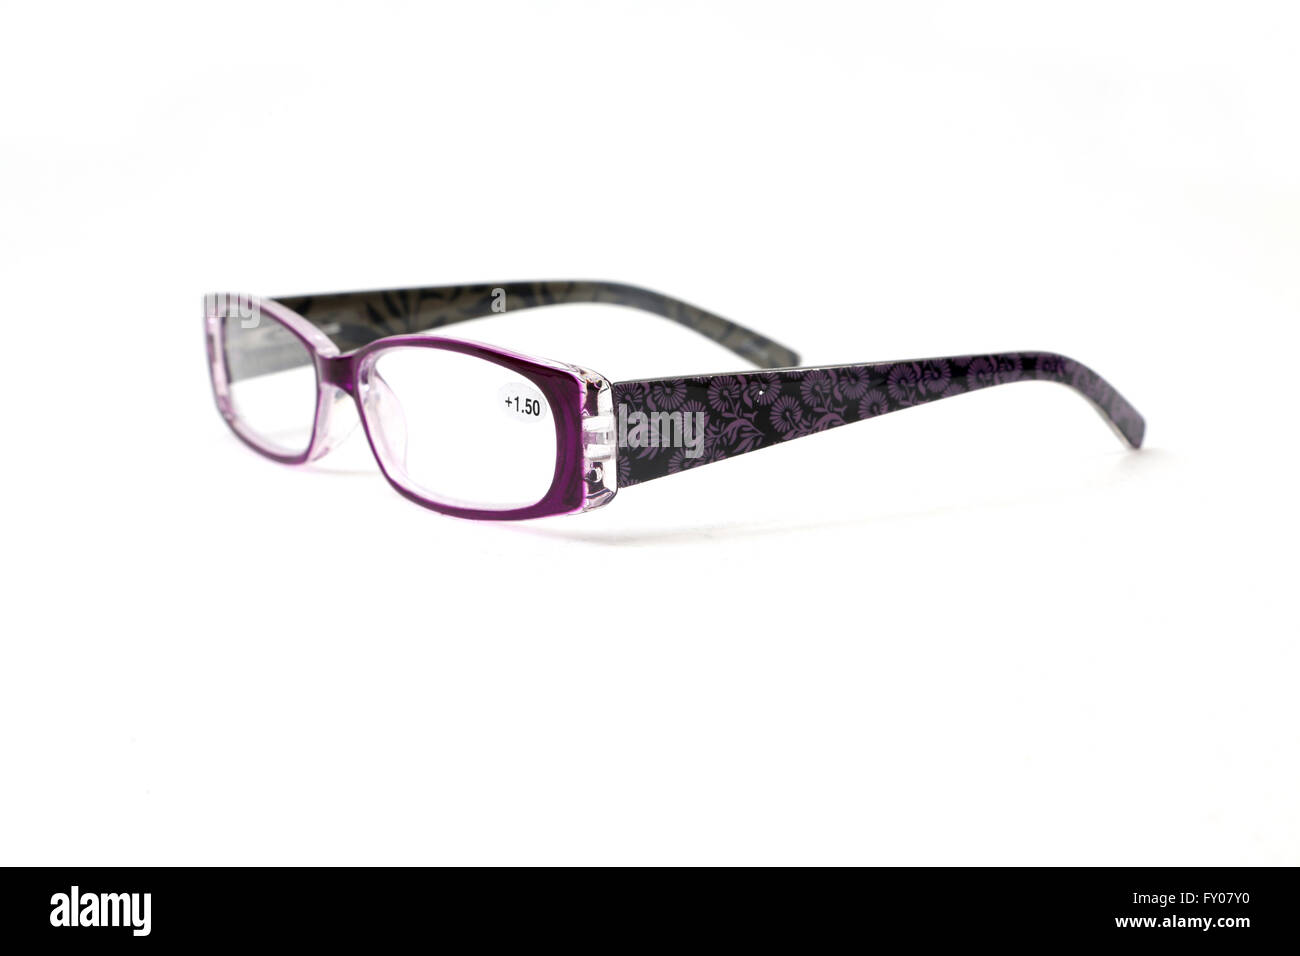 Purple Reading Glasses With Floral Pattern On The Arms - Stock Image